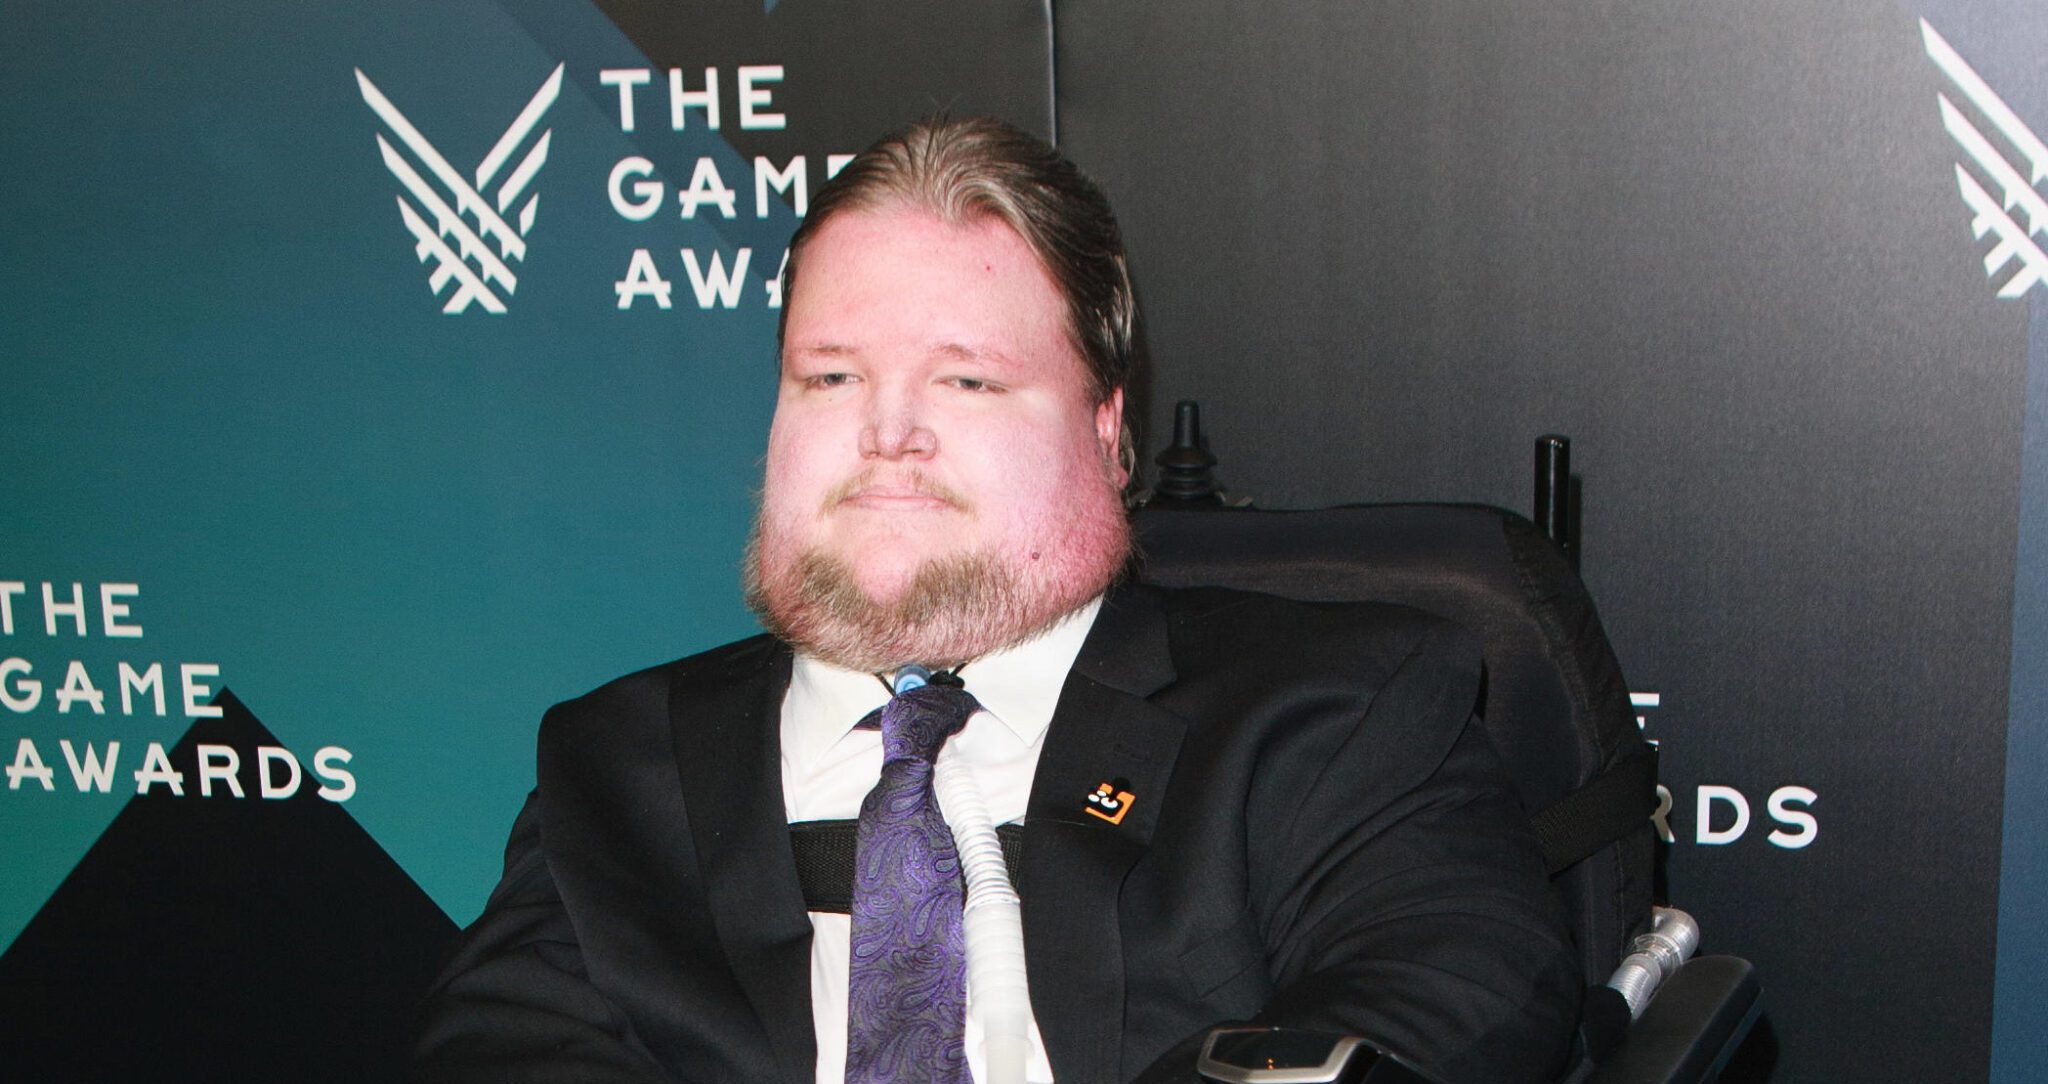 The Game Awards 2017 at Microsoft Theater - Arrivals  Featuring: Steven Spohn Where: Los Angeles, California, United States When: 07 Dec 2017 Credit: Tony Forte/WENN